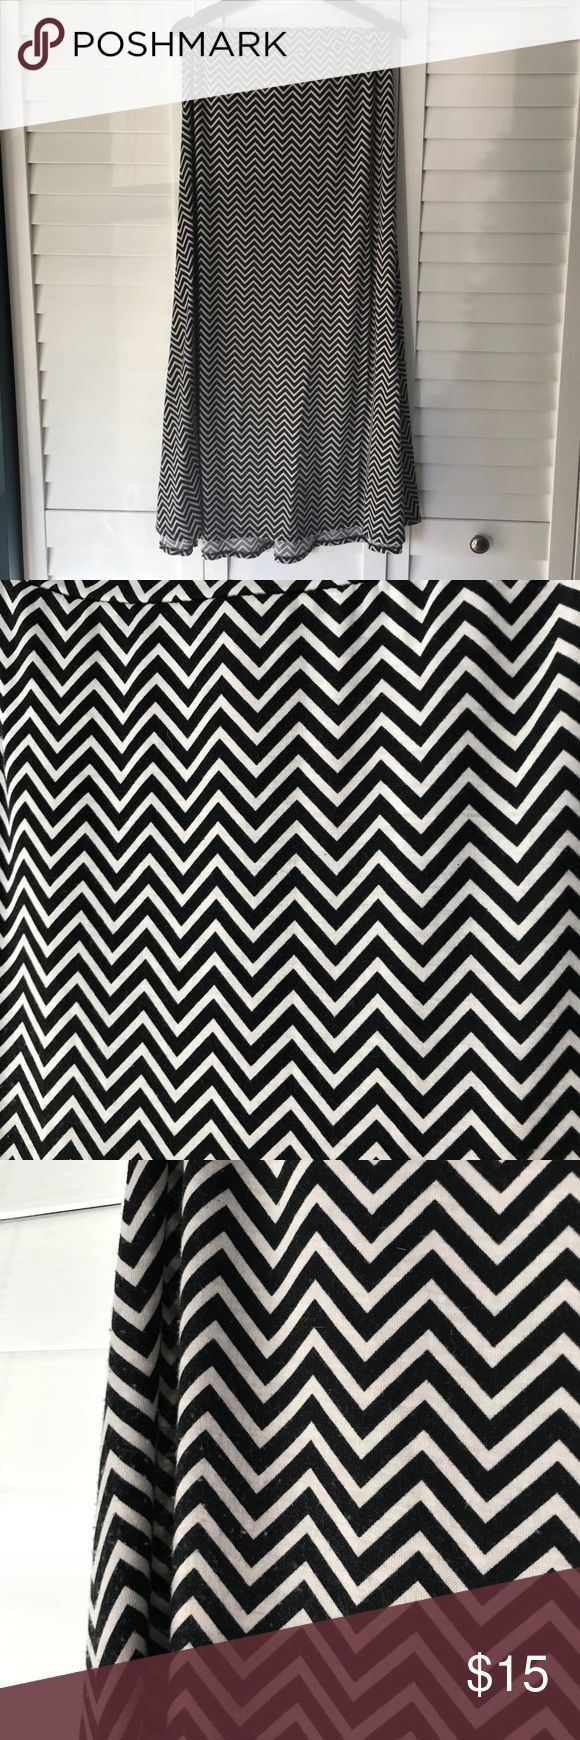 LuLaRoe Black & White Chevron Maxi Skirt LuLaRoe Maxi skirt in awesome black & white chevron pattern. Can be worn as a skirt or tube dress! Size L but easily fits an XL.  Always cared for per LLR instructions.  Good used condition. Light fading and pre-pilling from washing, which can easily been fixed with fabric shaved.   Please let me know if you have any questions!  [smoke-free/pet-friendly home] LuLaRoe Skirts Maxi